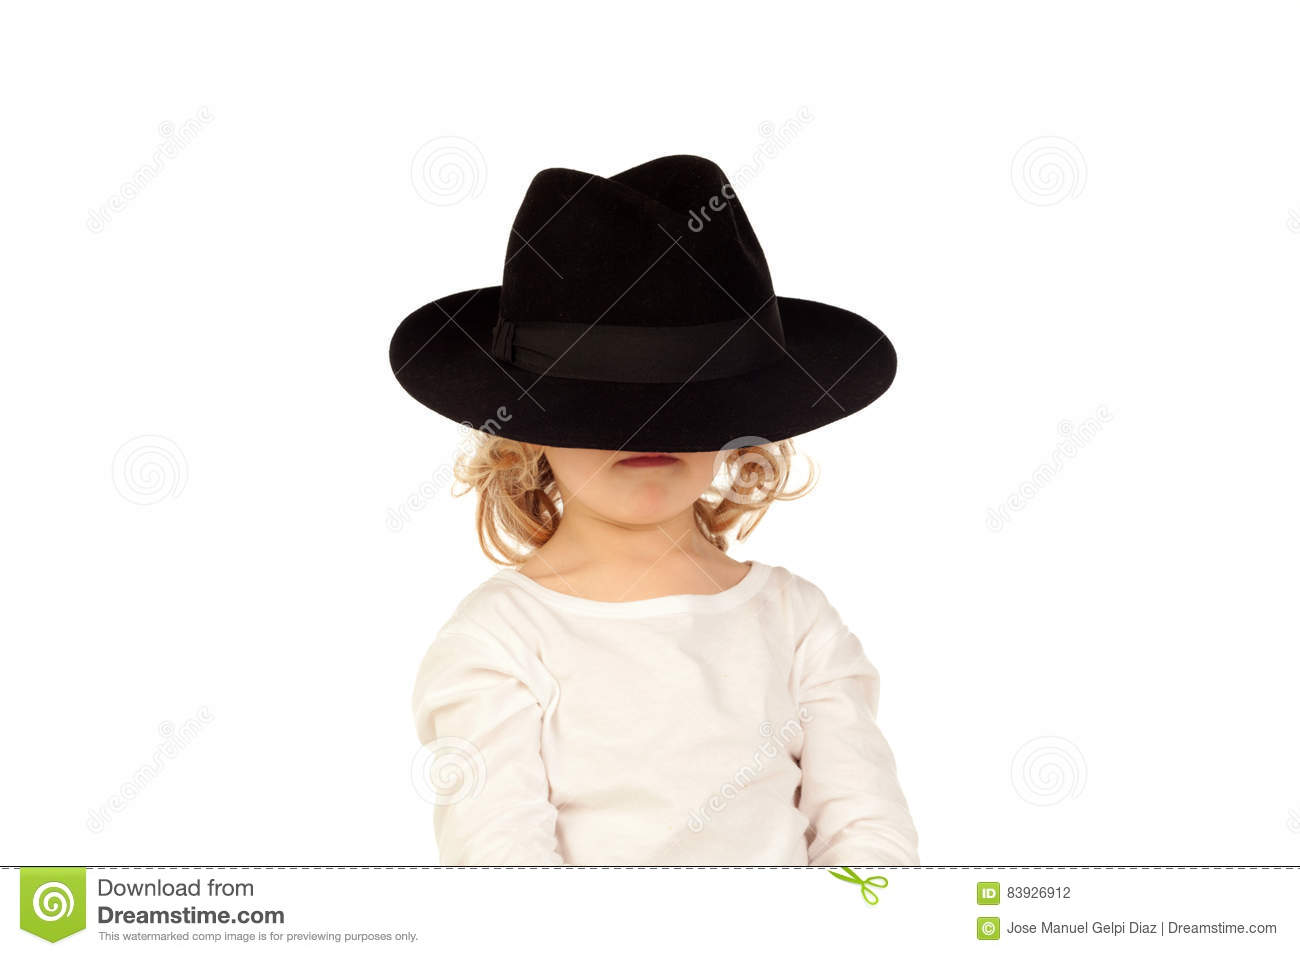 Funny small blond child with black hat